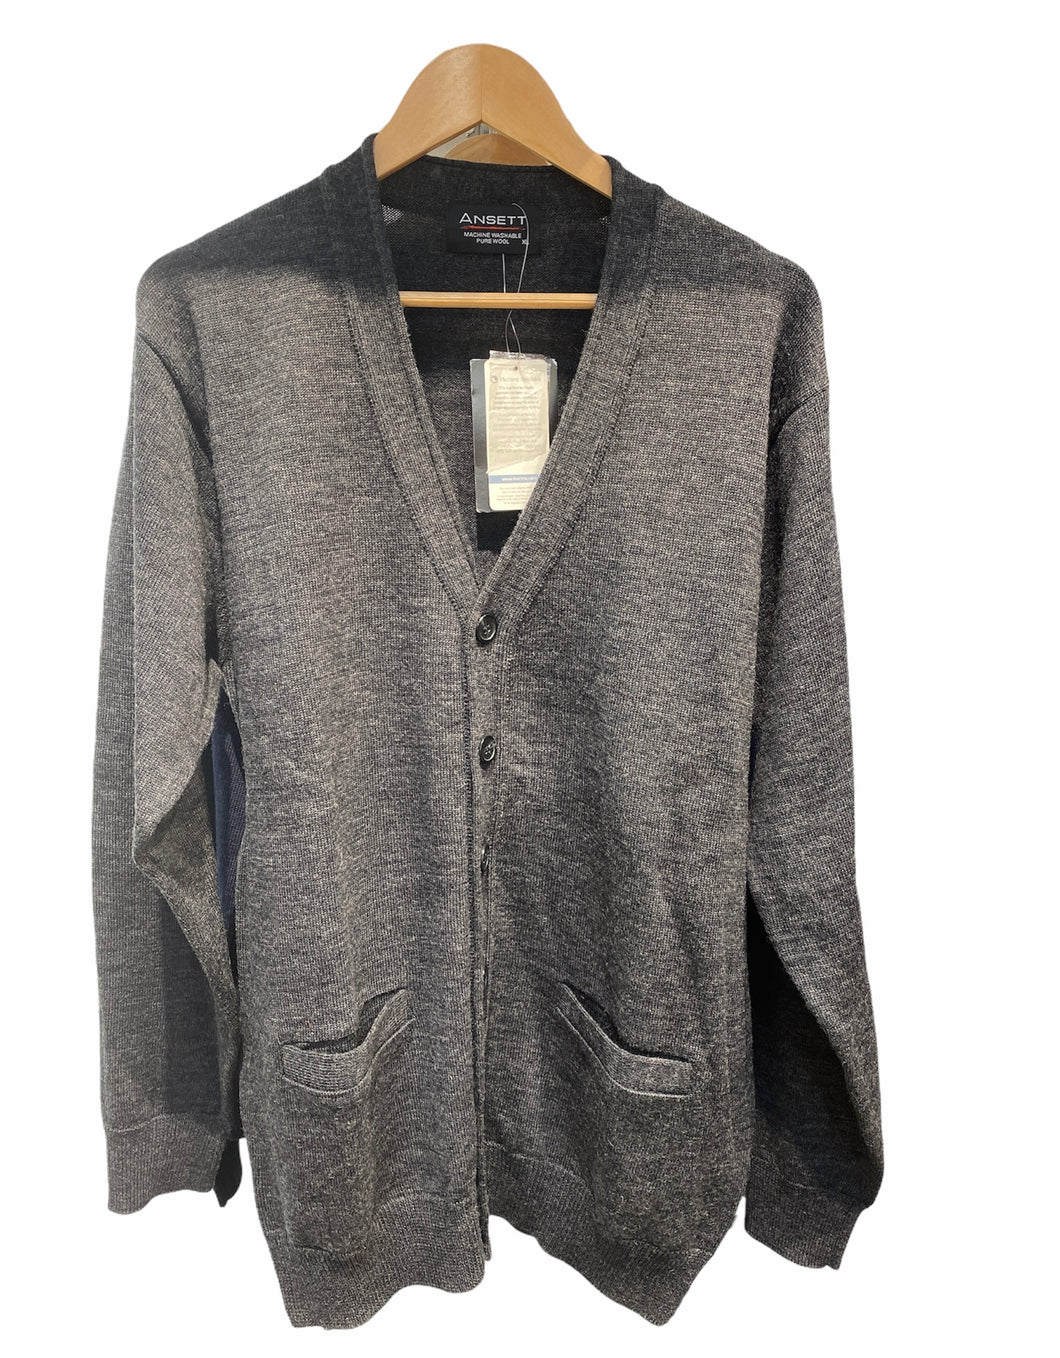 Machine washable Cardigan with Lined Pockets KW3034